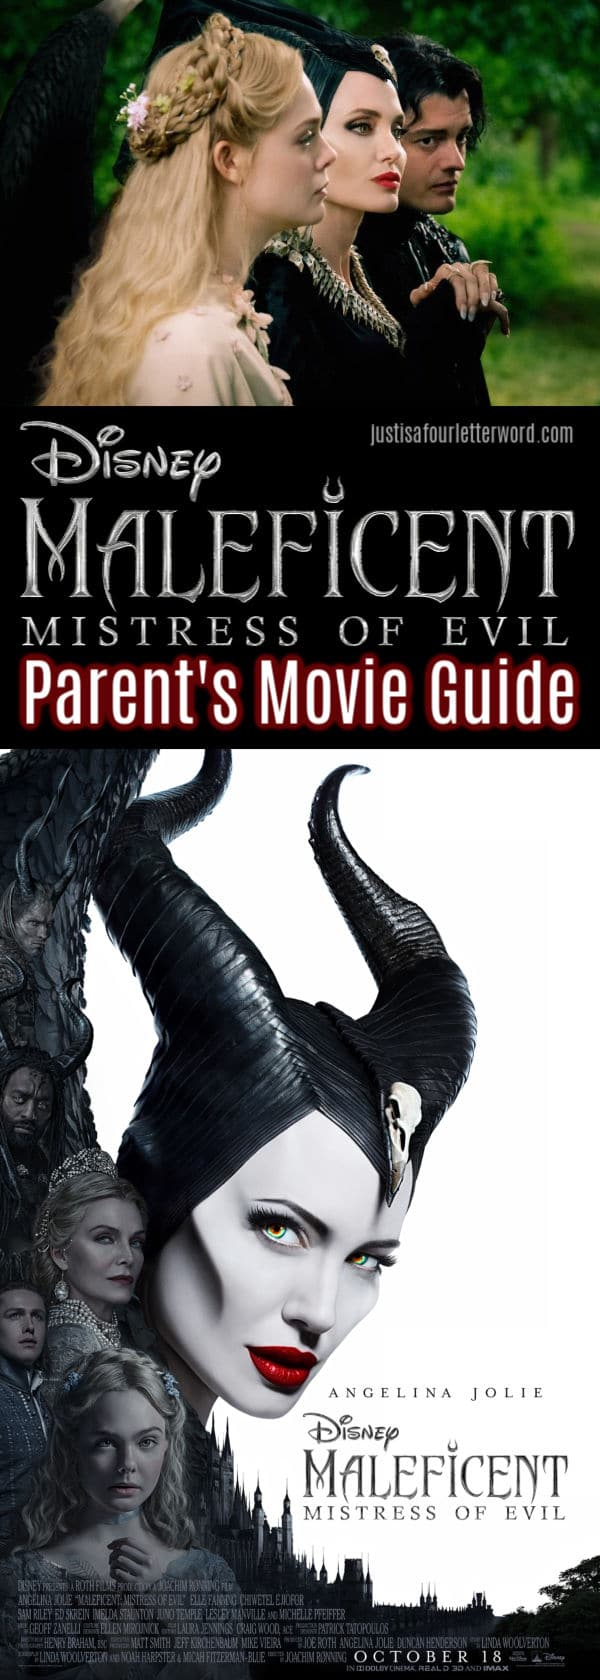 Maleficent 2 Parents Guide Misunderstood Or Mistress Of Evil